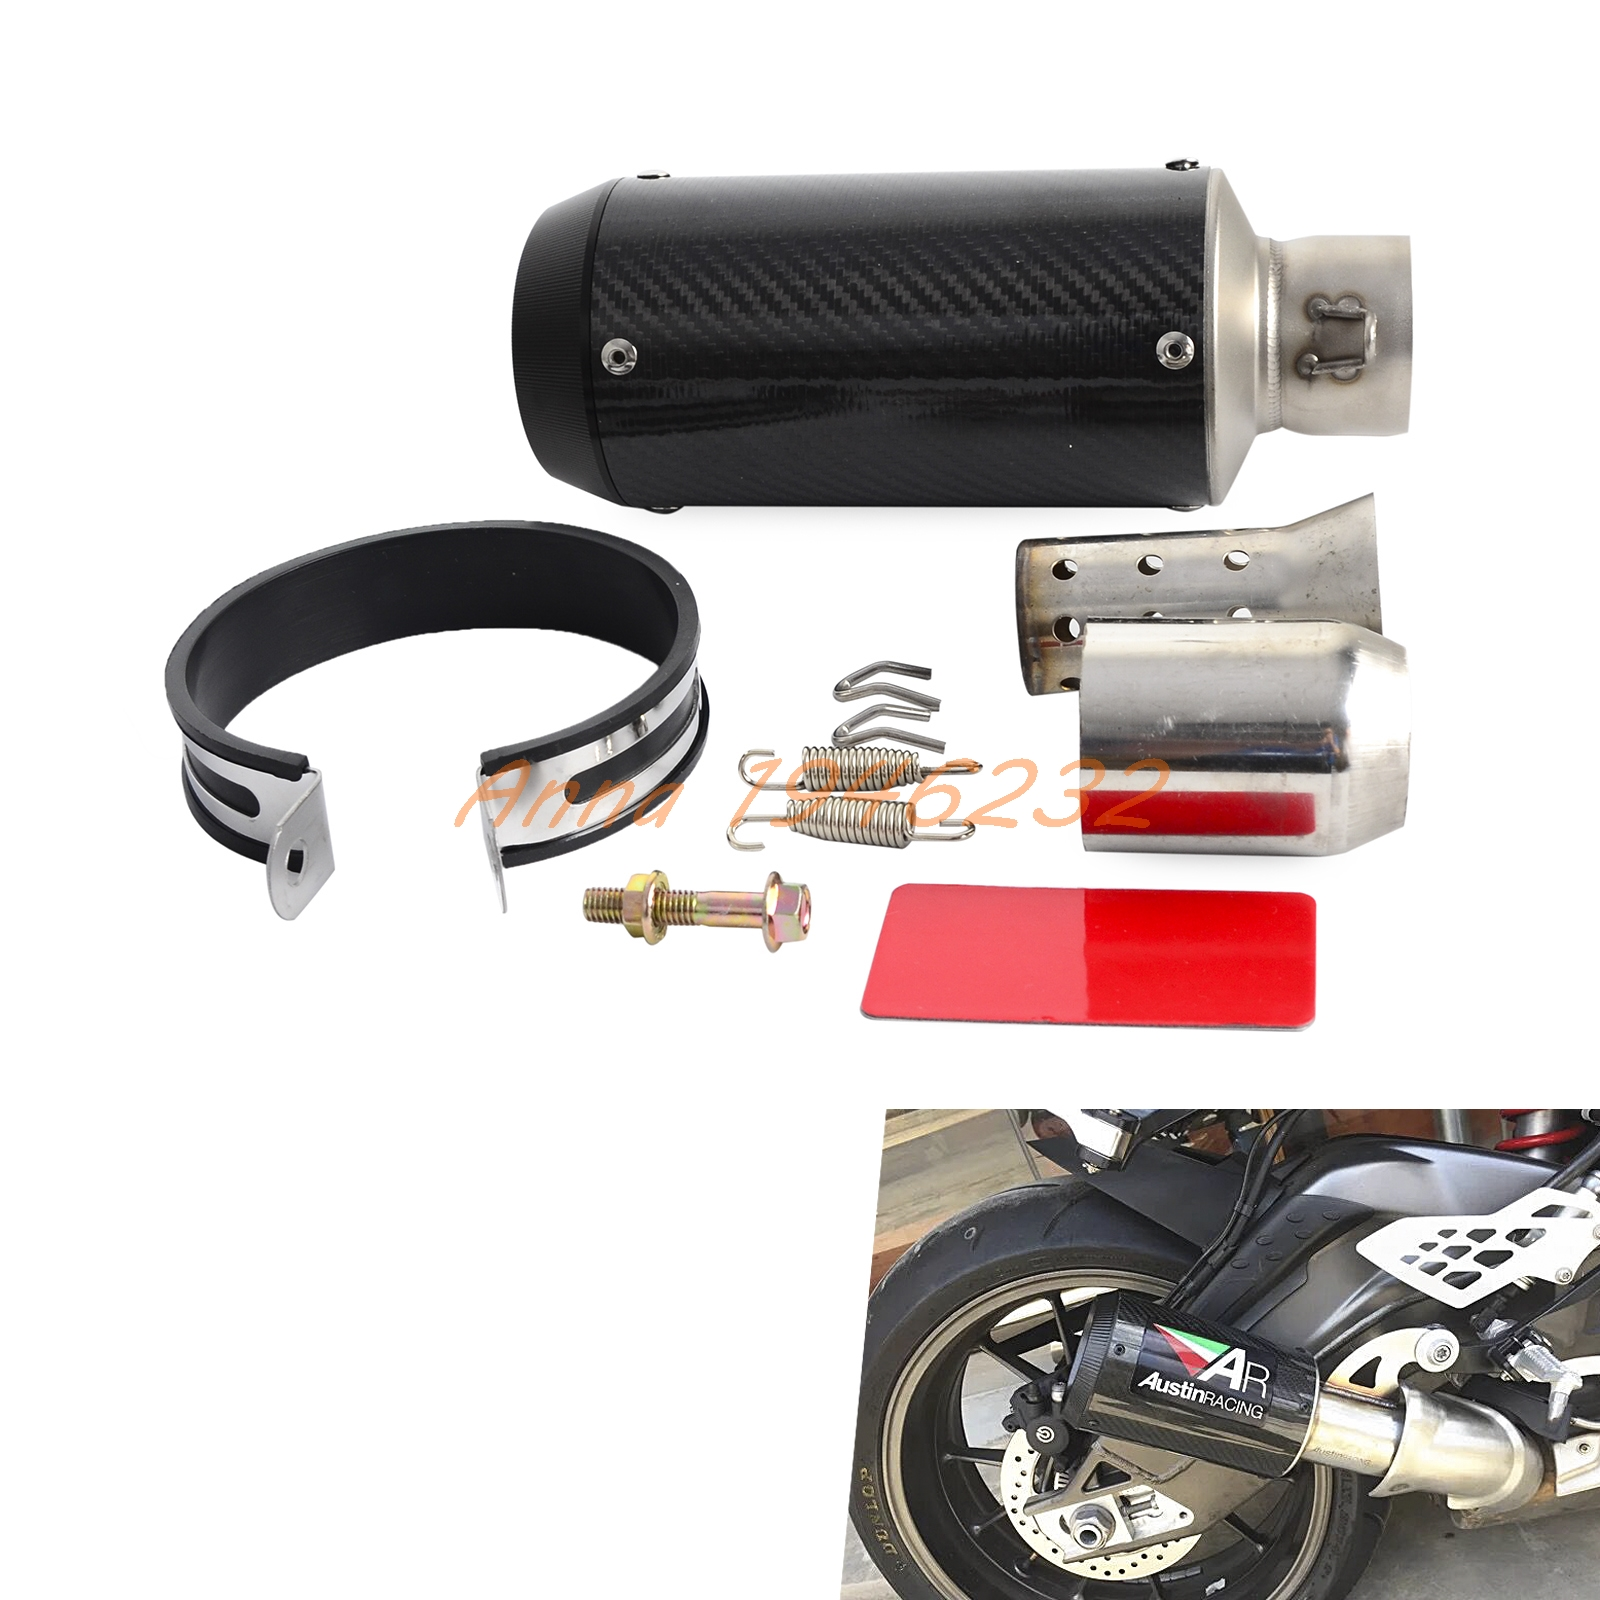 High performance motorcycle carbon fiber slip-on exhaust muffler For Scooter Motorcycle ATV Dirt Bike Quad length 360mm id 51mm carbon fiber motorcycle exhaust muffler pipe with silencer case for cb600 mt07 yzf duke fz6 atv dirt bike